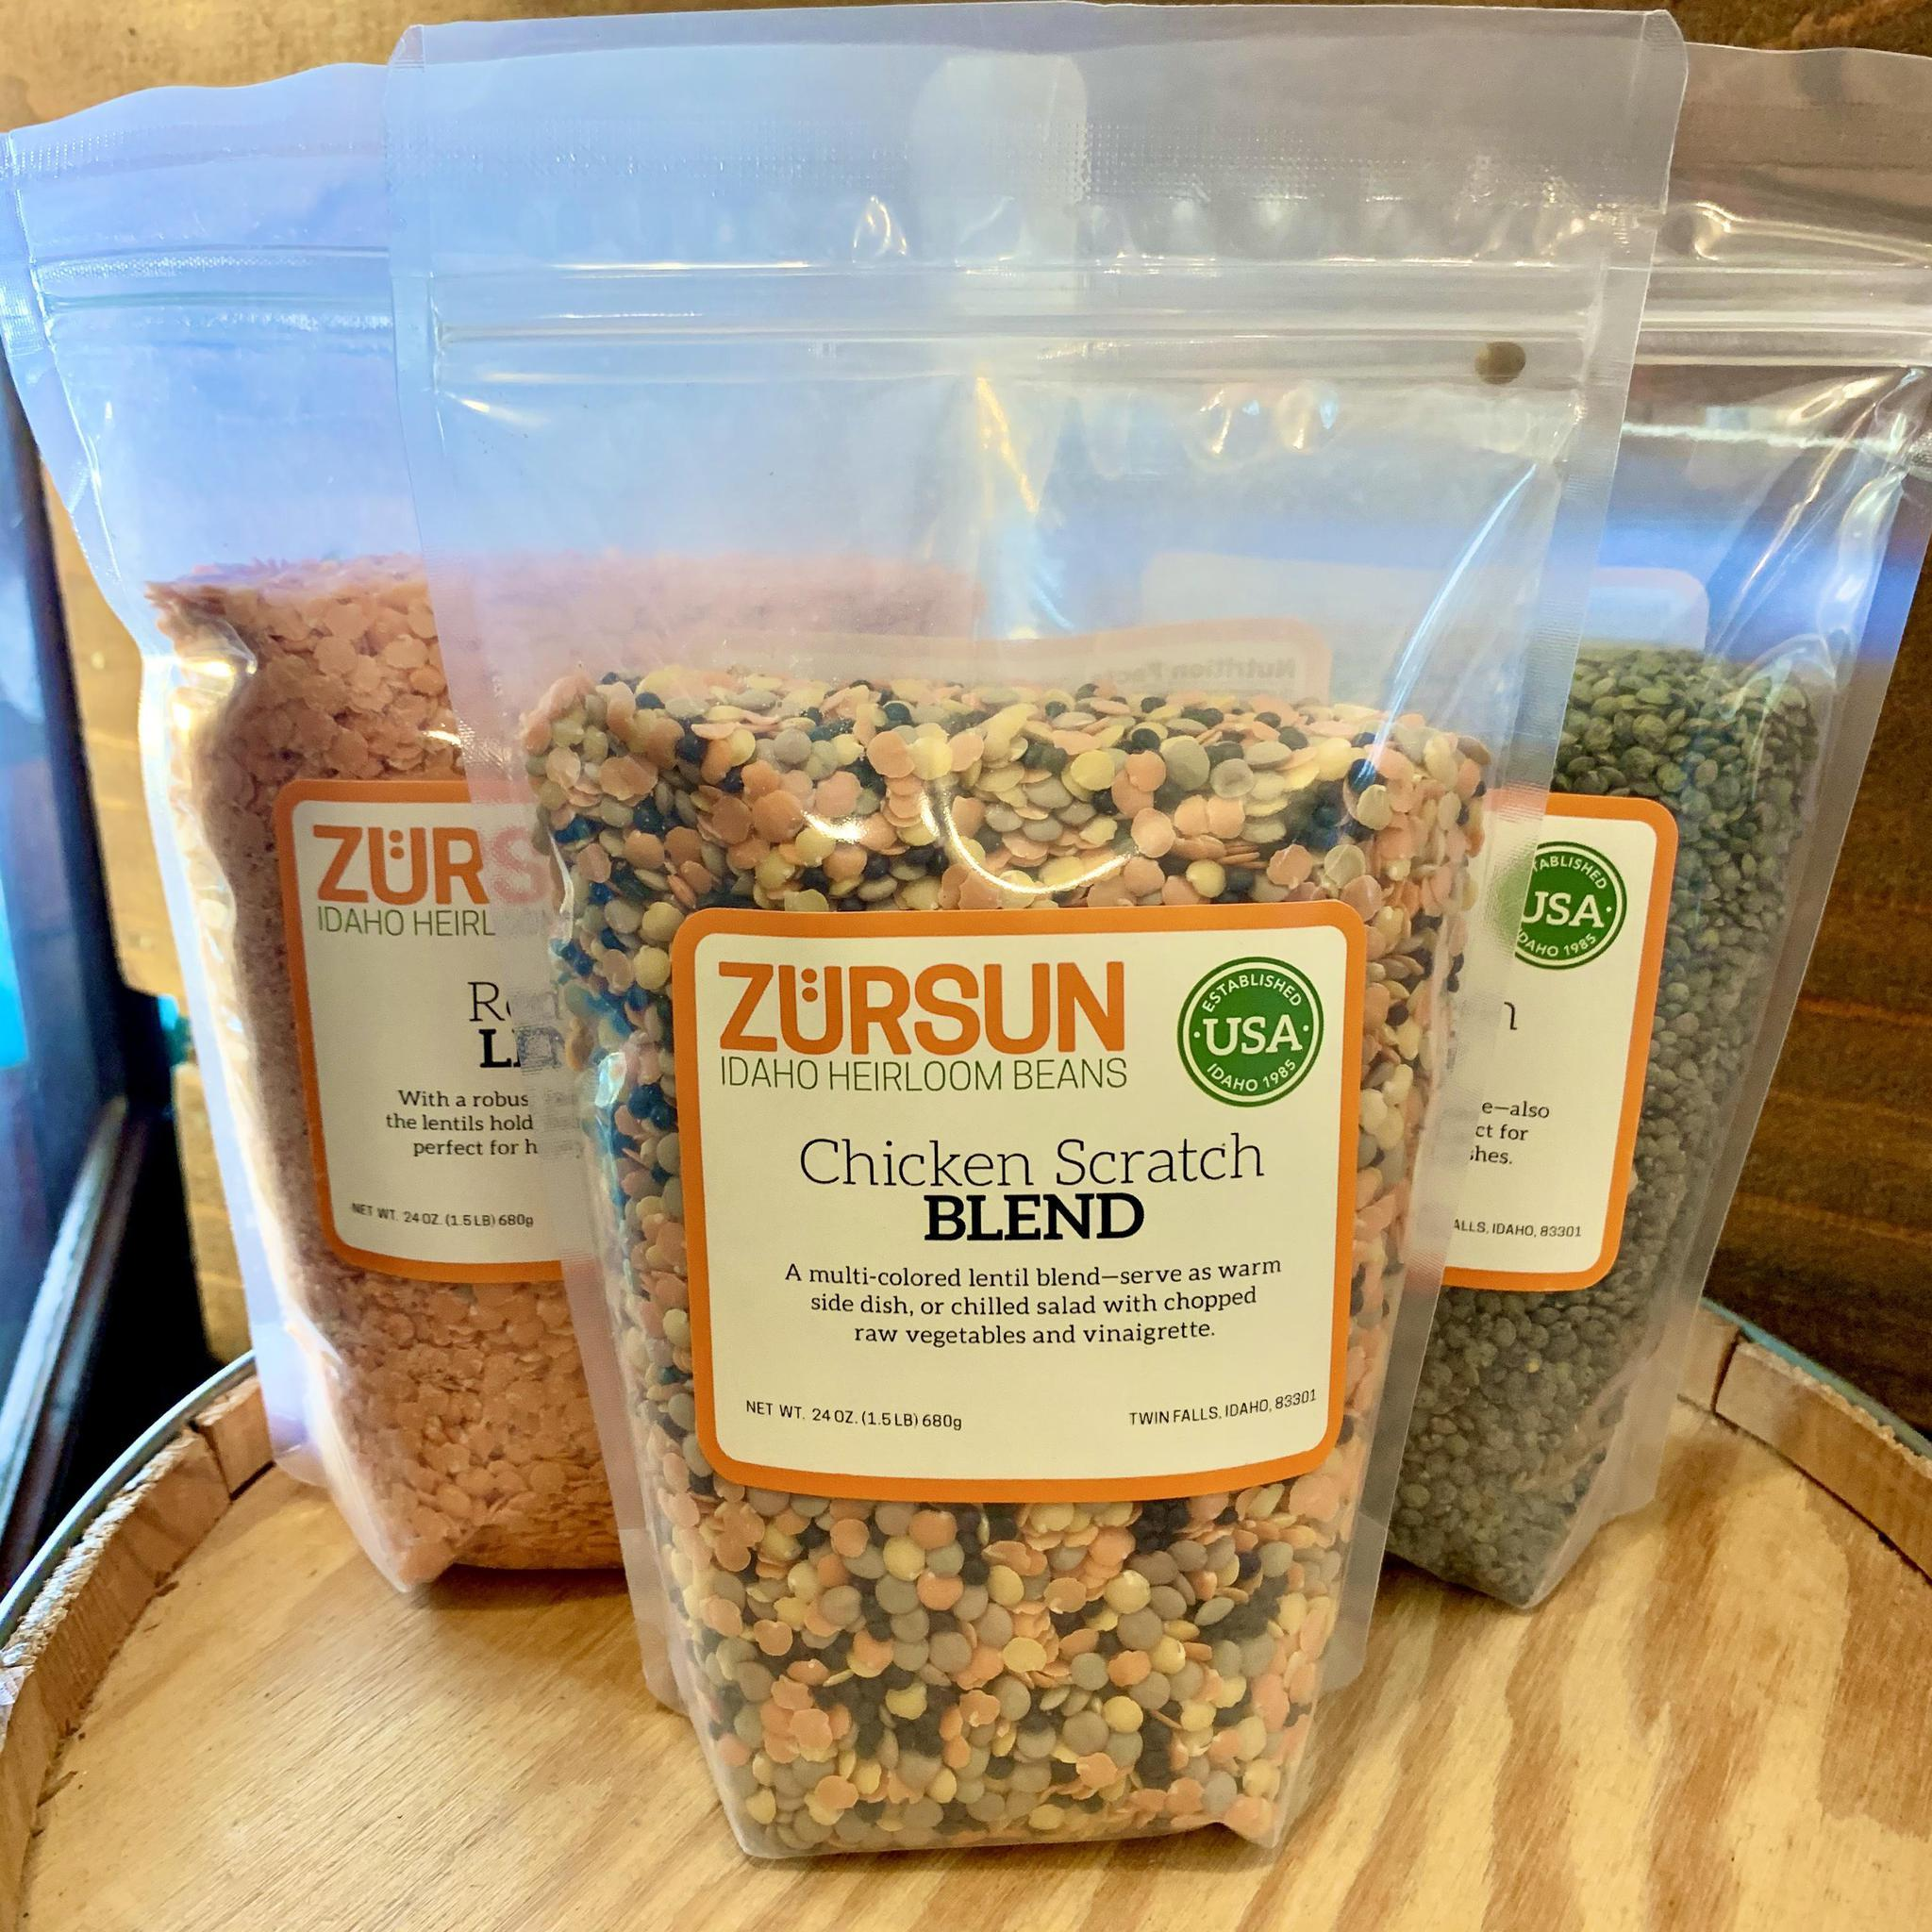 Heirloom Lentils by Zürsun Idaho Heirloom Beans Chicken Scratch